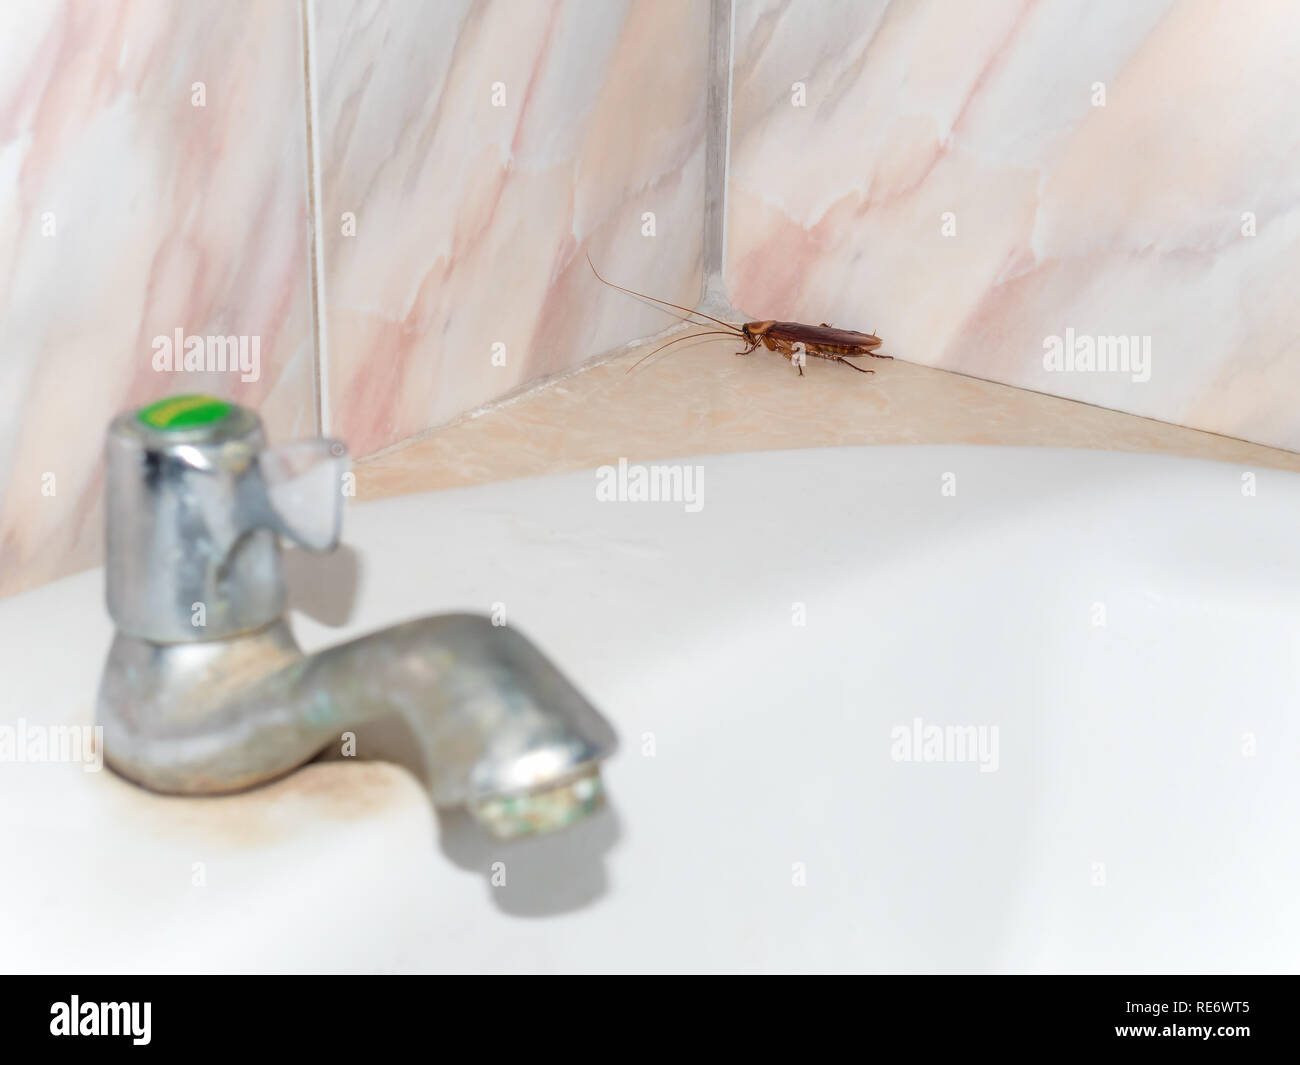 Close-up image of cockroach hiding in corner in house on background of water closet. - Stock Image